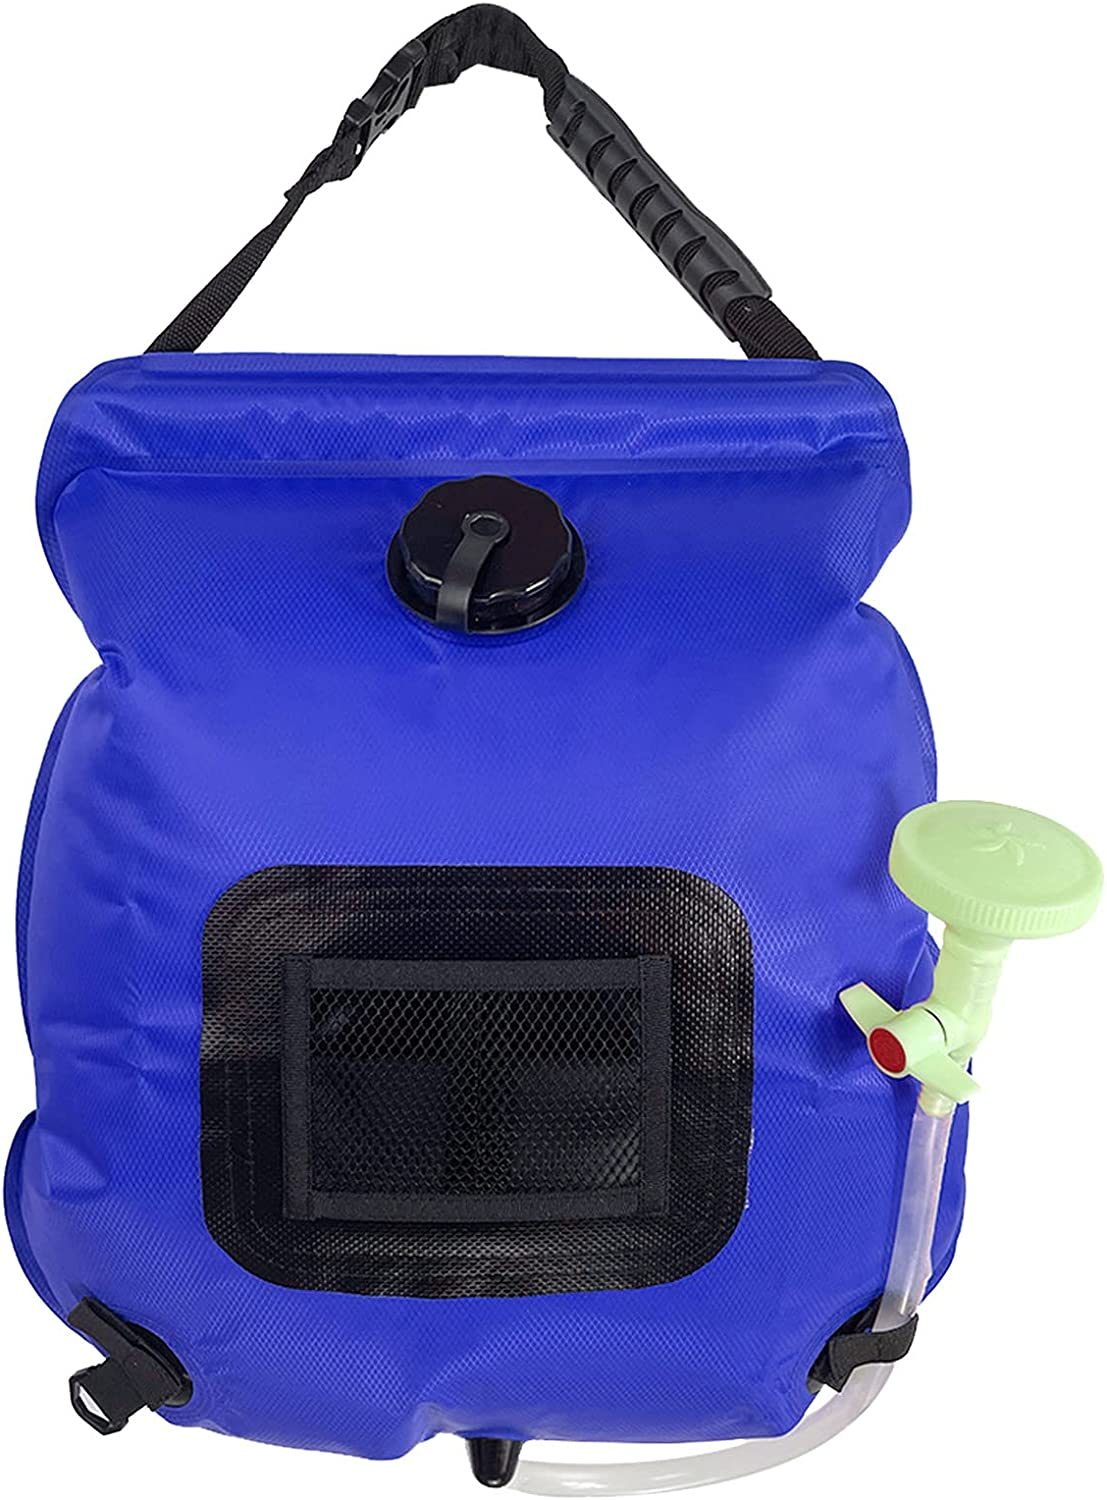 Portable Solar Shower Bag Challenge the lowest price of Japan 5 Campin Heating Popular products 20L gallons